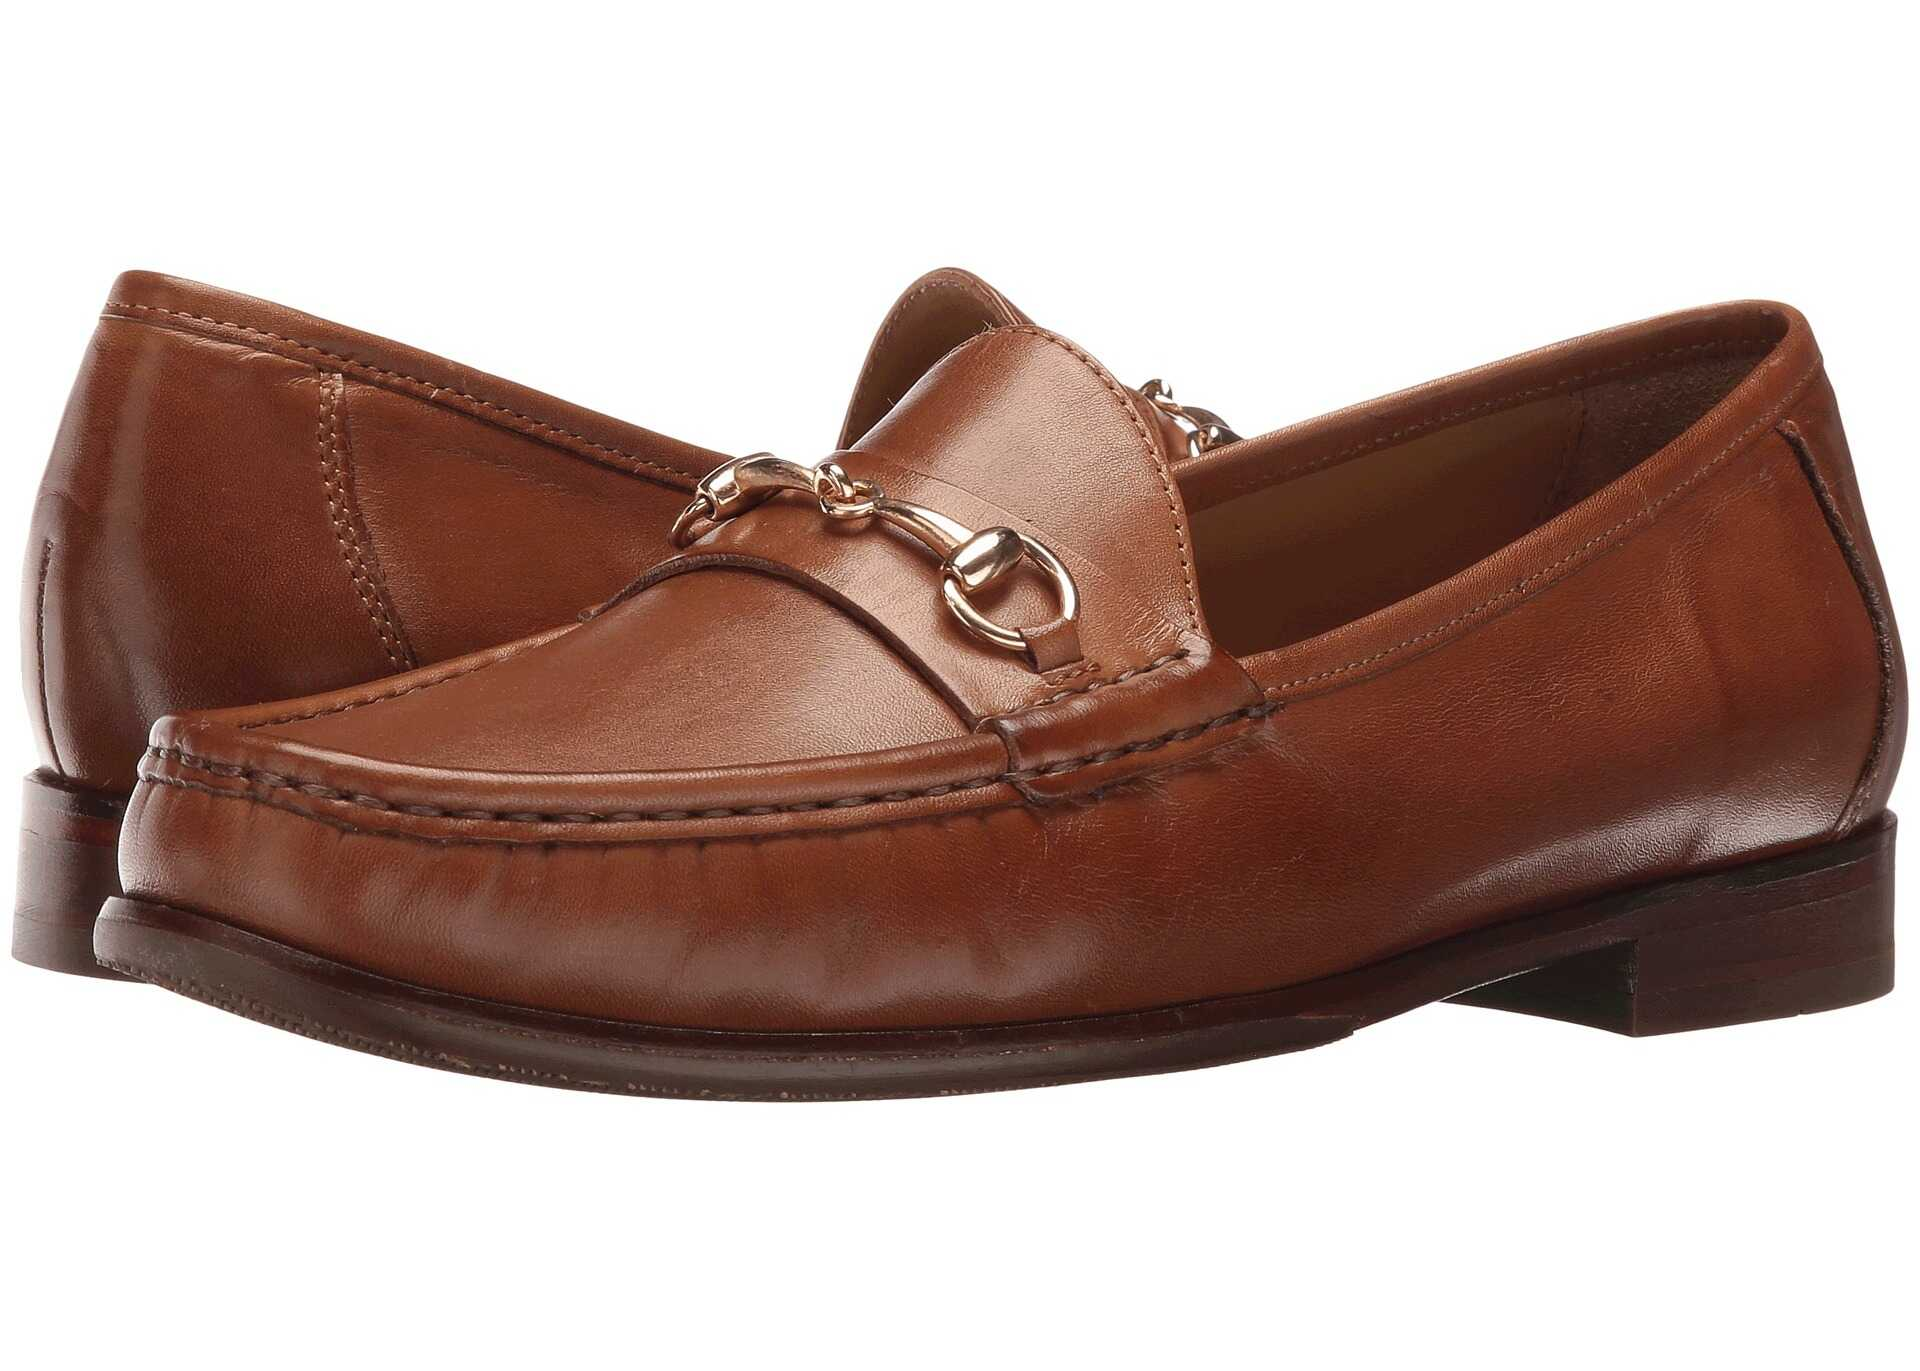 Cole Haan Ascot Ii* British Tan Calf